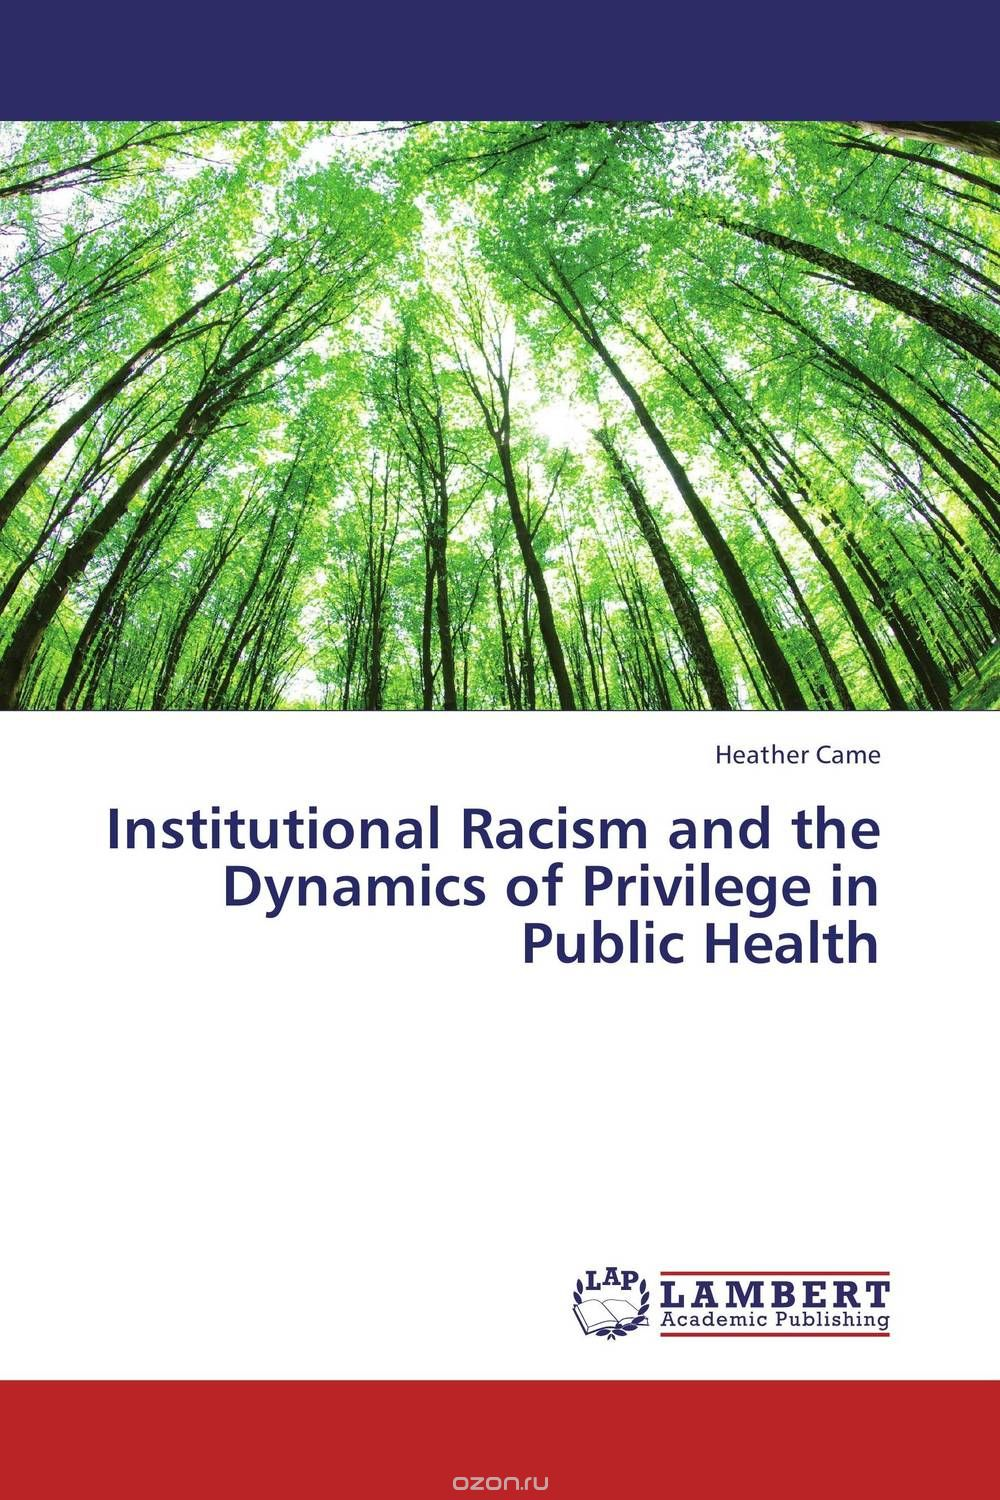 Institutional Racism and the Dynamics of Privilege in Public Health